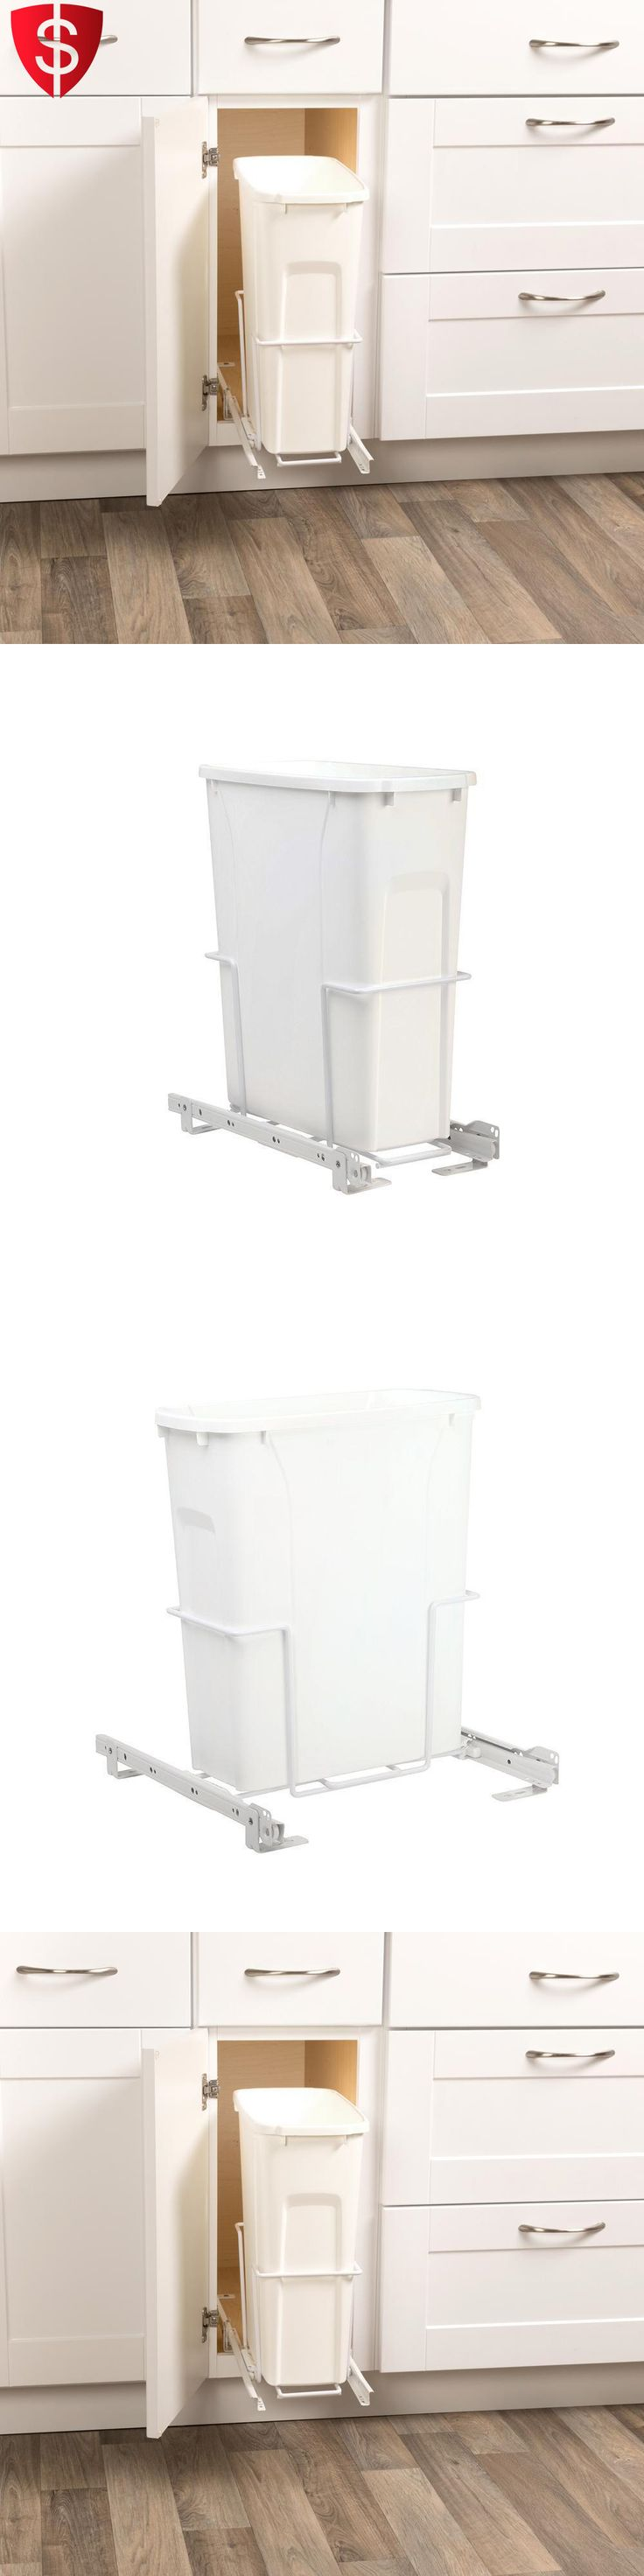 Trash Cans And Wastebaskets 20608: Kitchen Cabinet Trash Can Slide Pull Out  Waste Container Kit